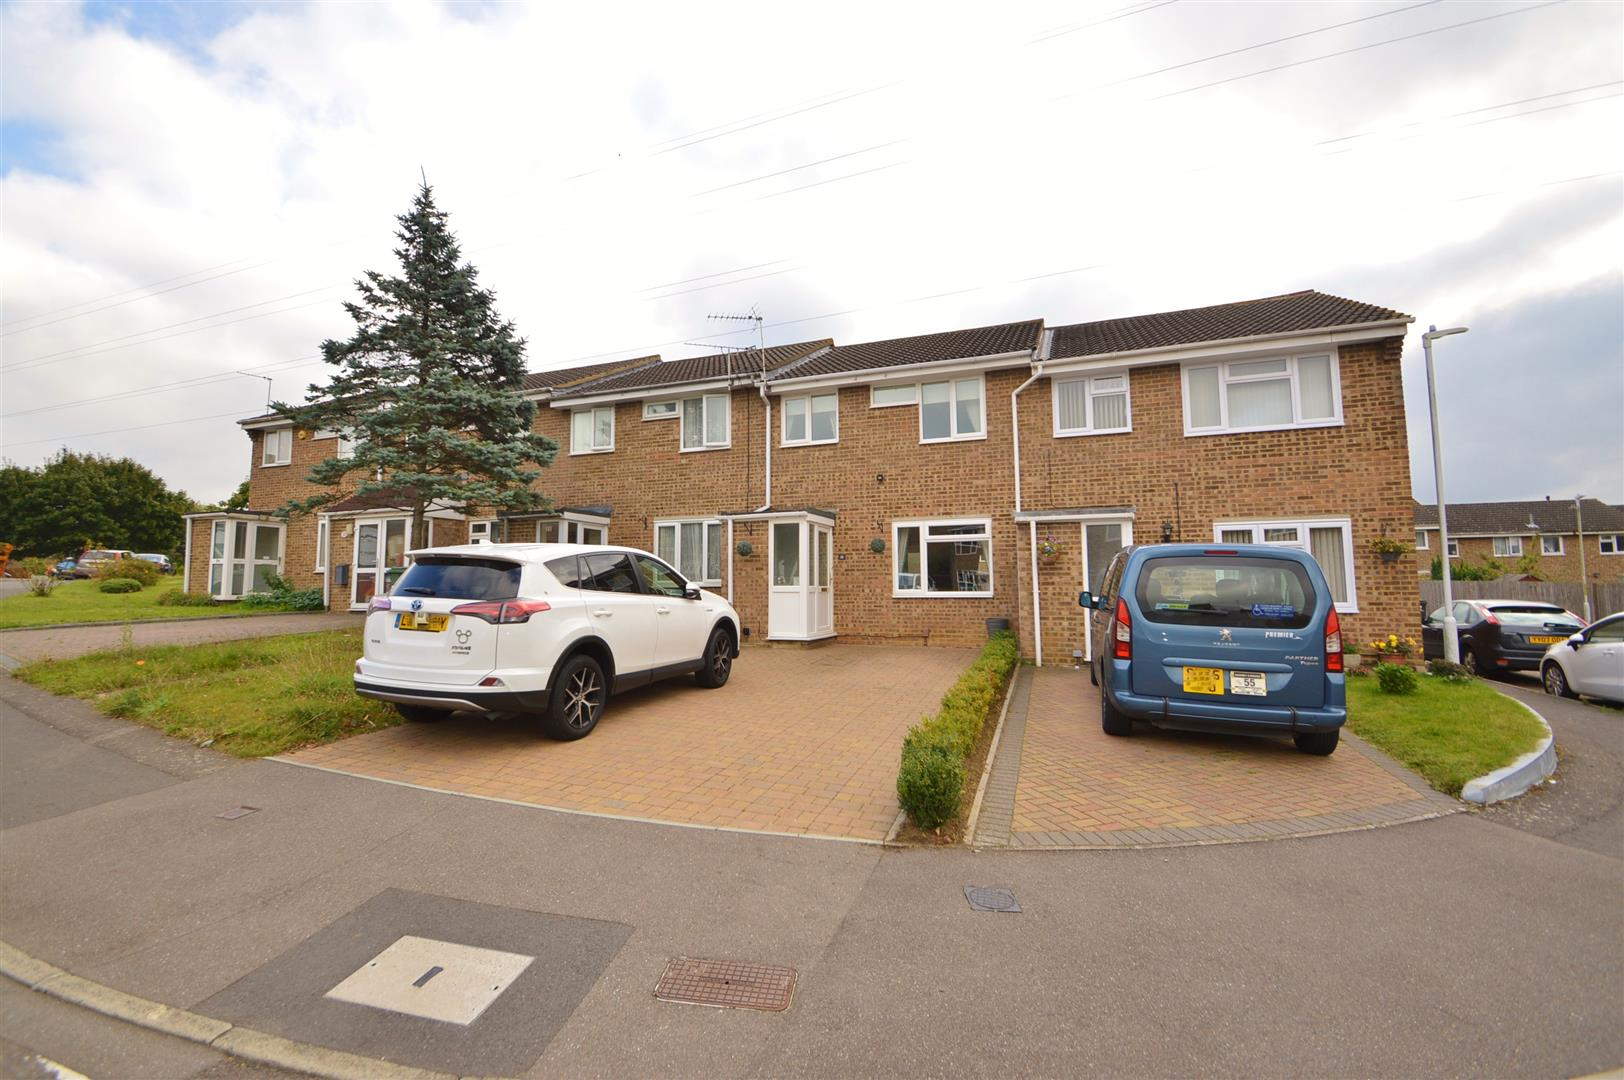 3 Bedrooms Terraced House for sale in Bonnington Road, Maidstone